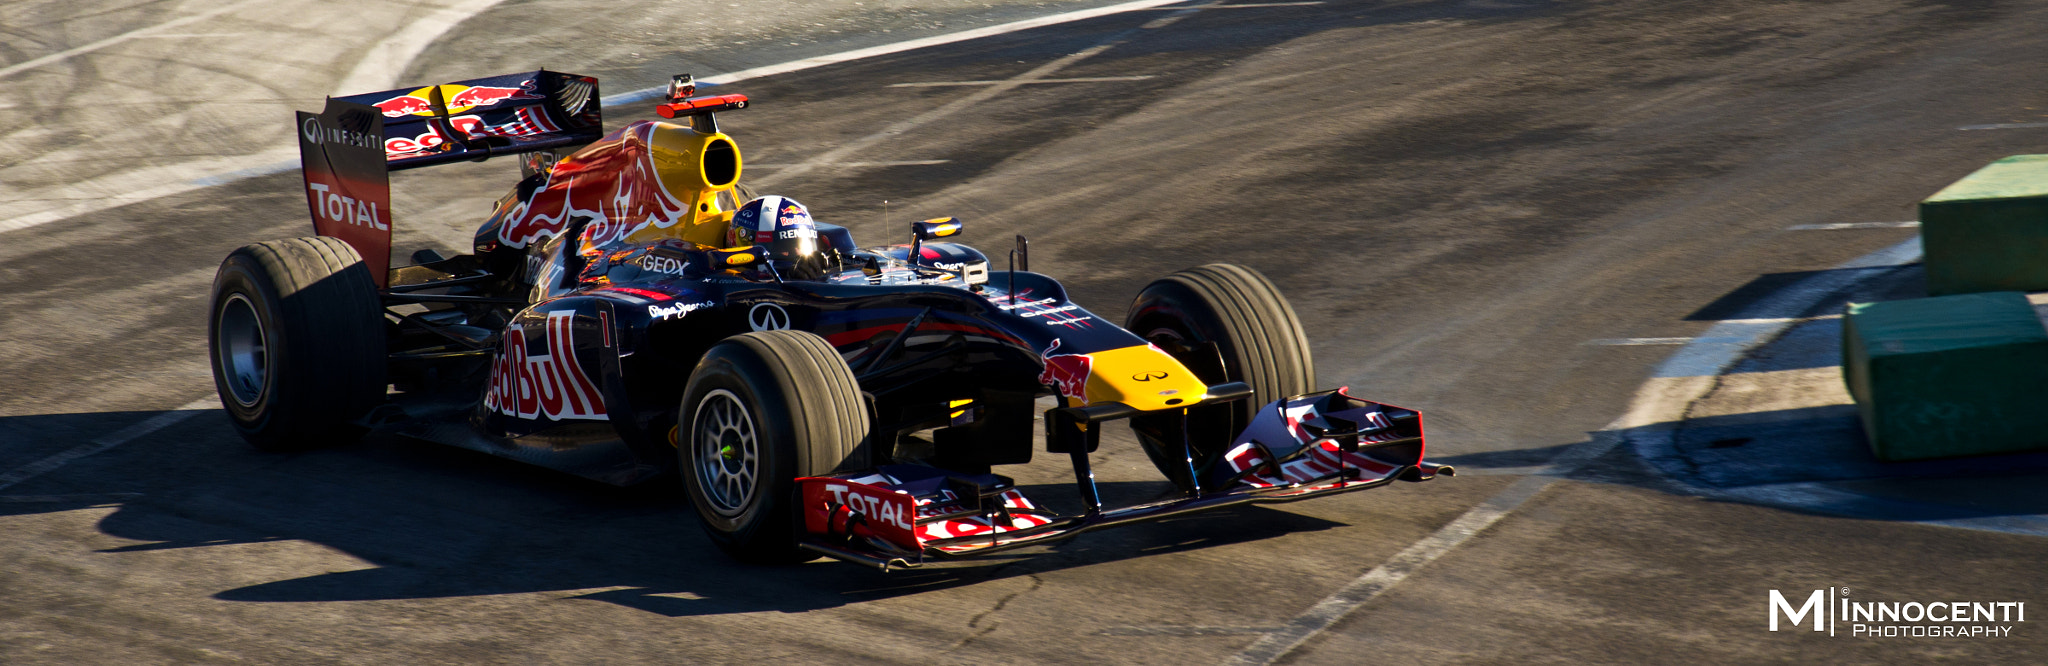 Photograph David Coultard on F1 Red Bull by Matteo Innocenti on 500px